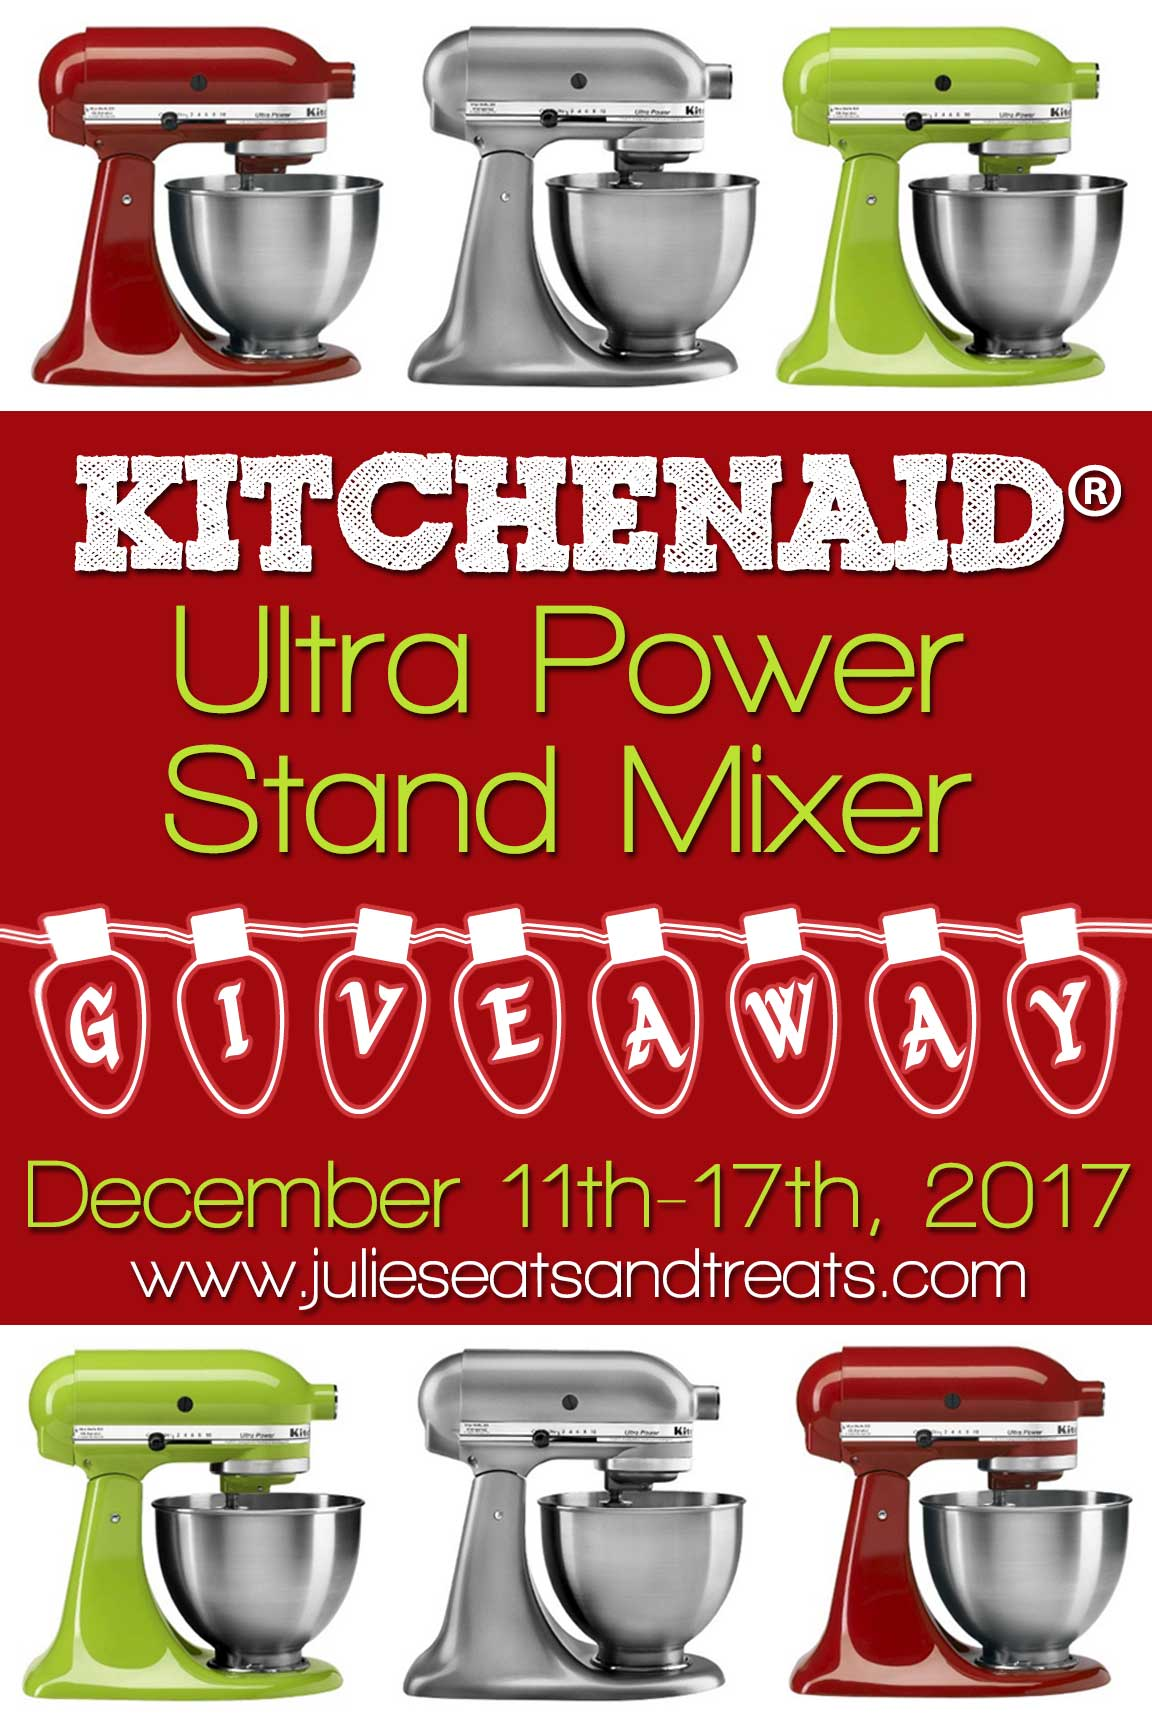 Kitchenaid ultra power stand mixer giveaway, december 11th through 17th, 2017